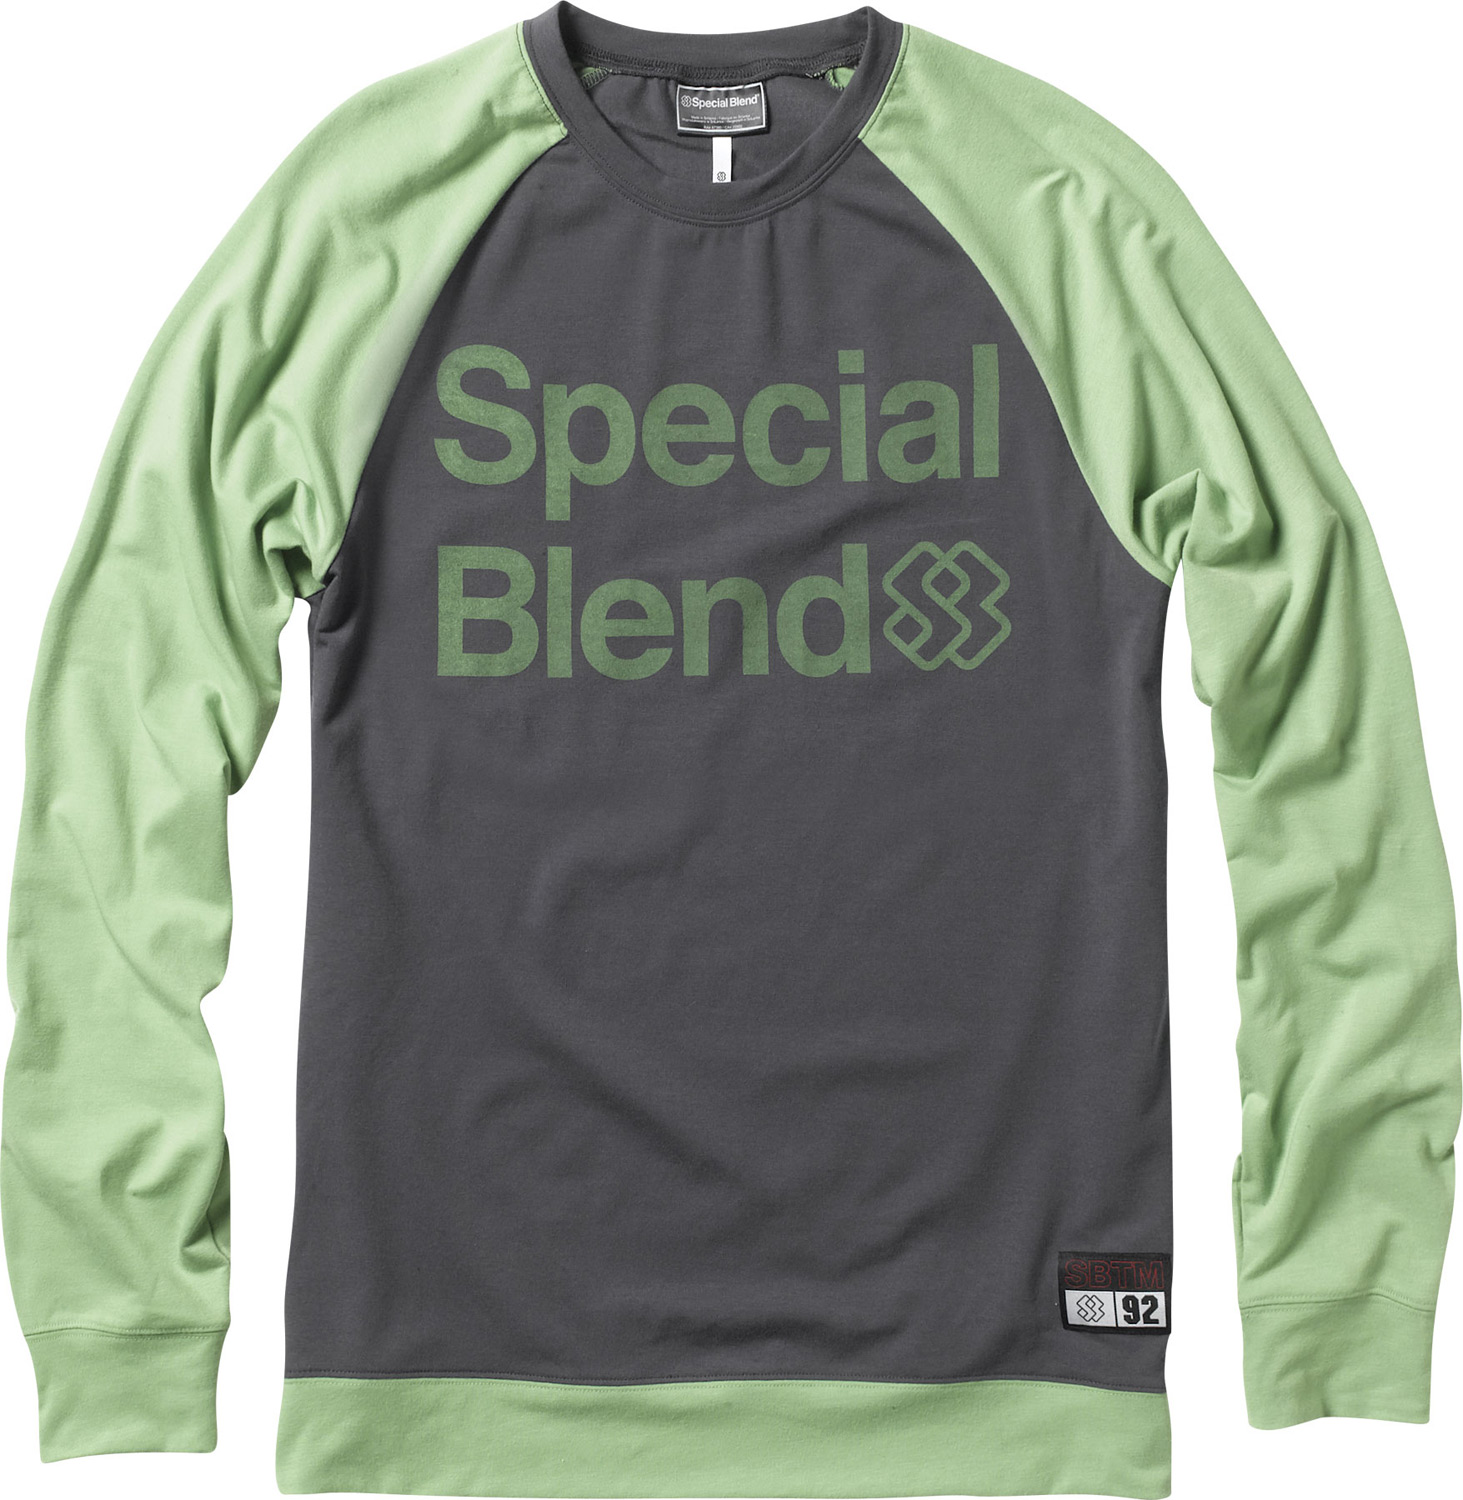 Key Features of the Special Blend Dirty Jersey First Layer Top: Freedom Fit Wicking and Anti-Microbial Color Blocked Large SB emblem on front - $33.95